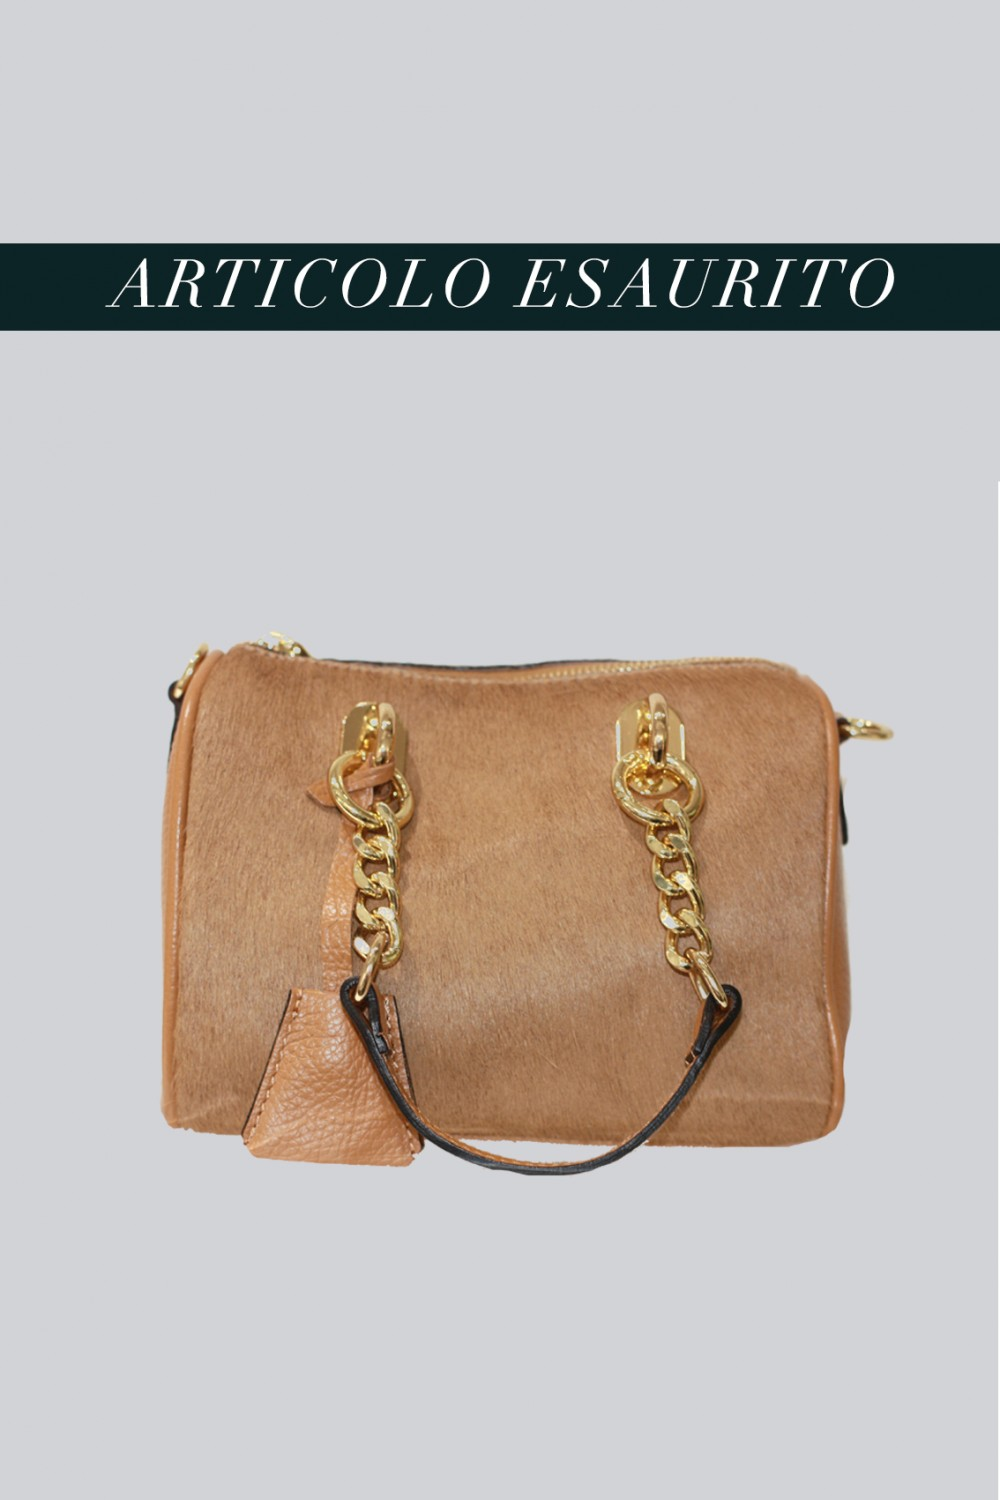 Mini bauletto in cavallino beige